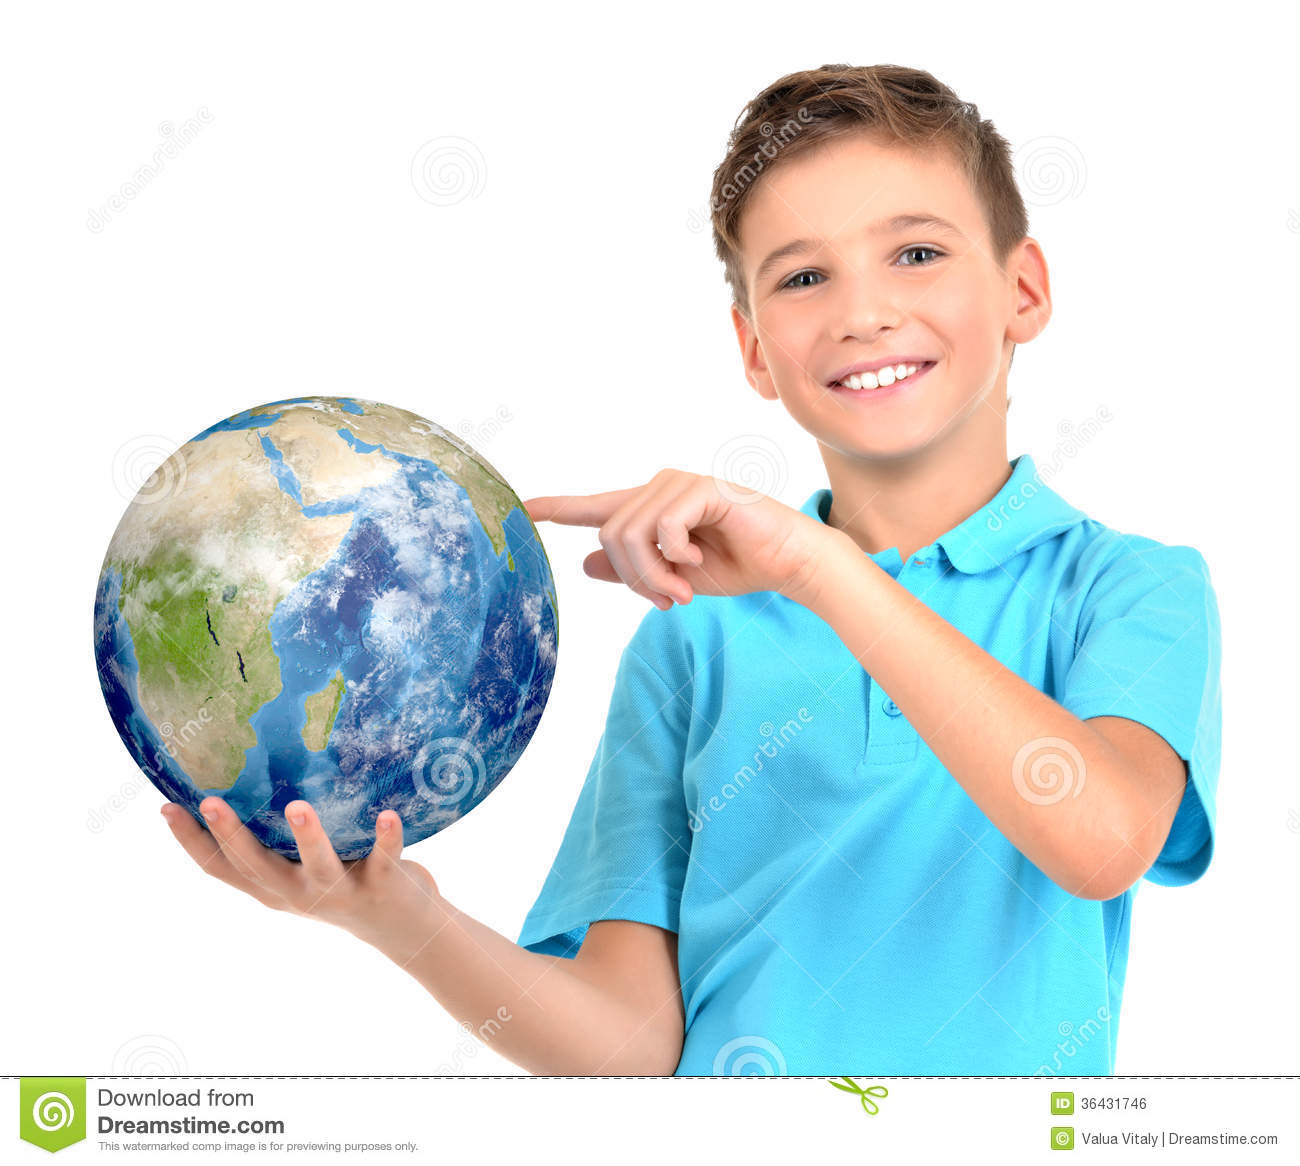 https://thumbs.dreamstime.com/z/smiling-boy-casual-holding-planet-earth-hands-points-isolated-white-36431746.jpg